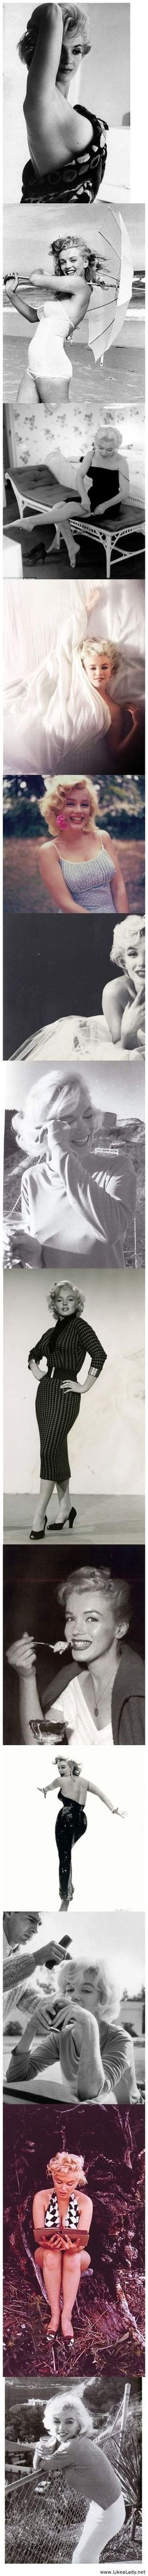 Marilyn Monroe, Absolutely stunning, let's go back to the 60's